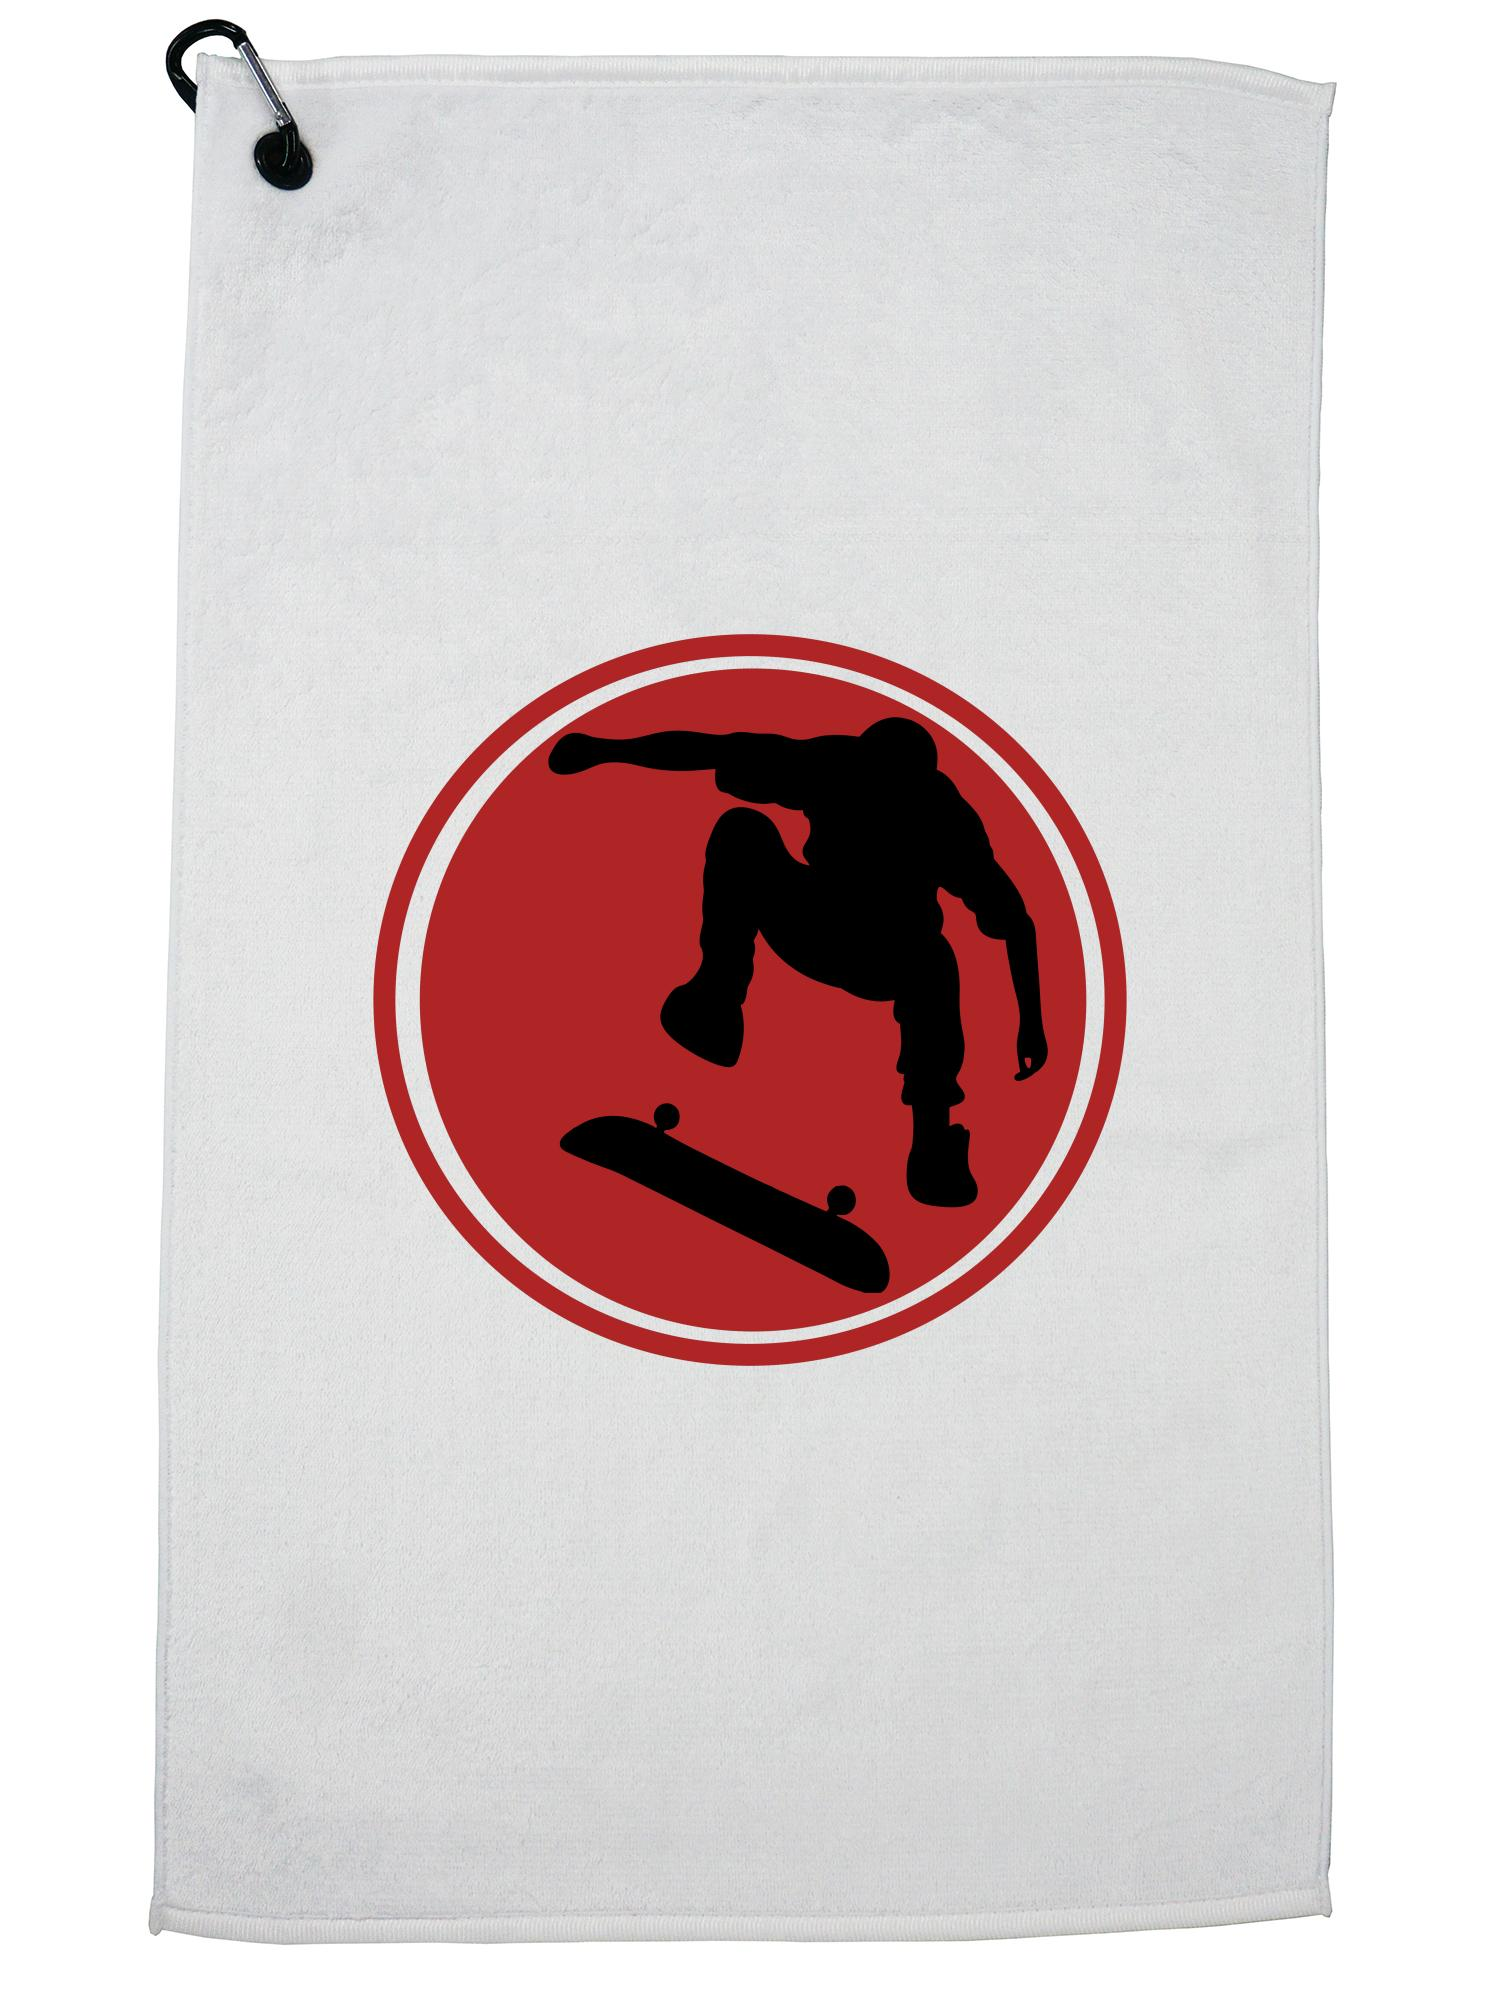 Red Skateboard Skater Silhouette Jumping Golf Towel with Carabiner Clip by Hollywood Thread